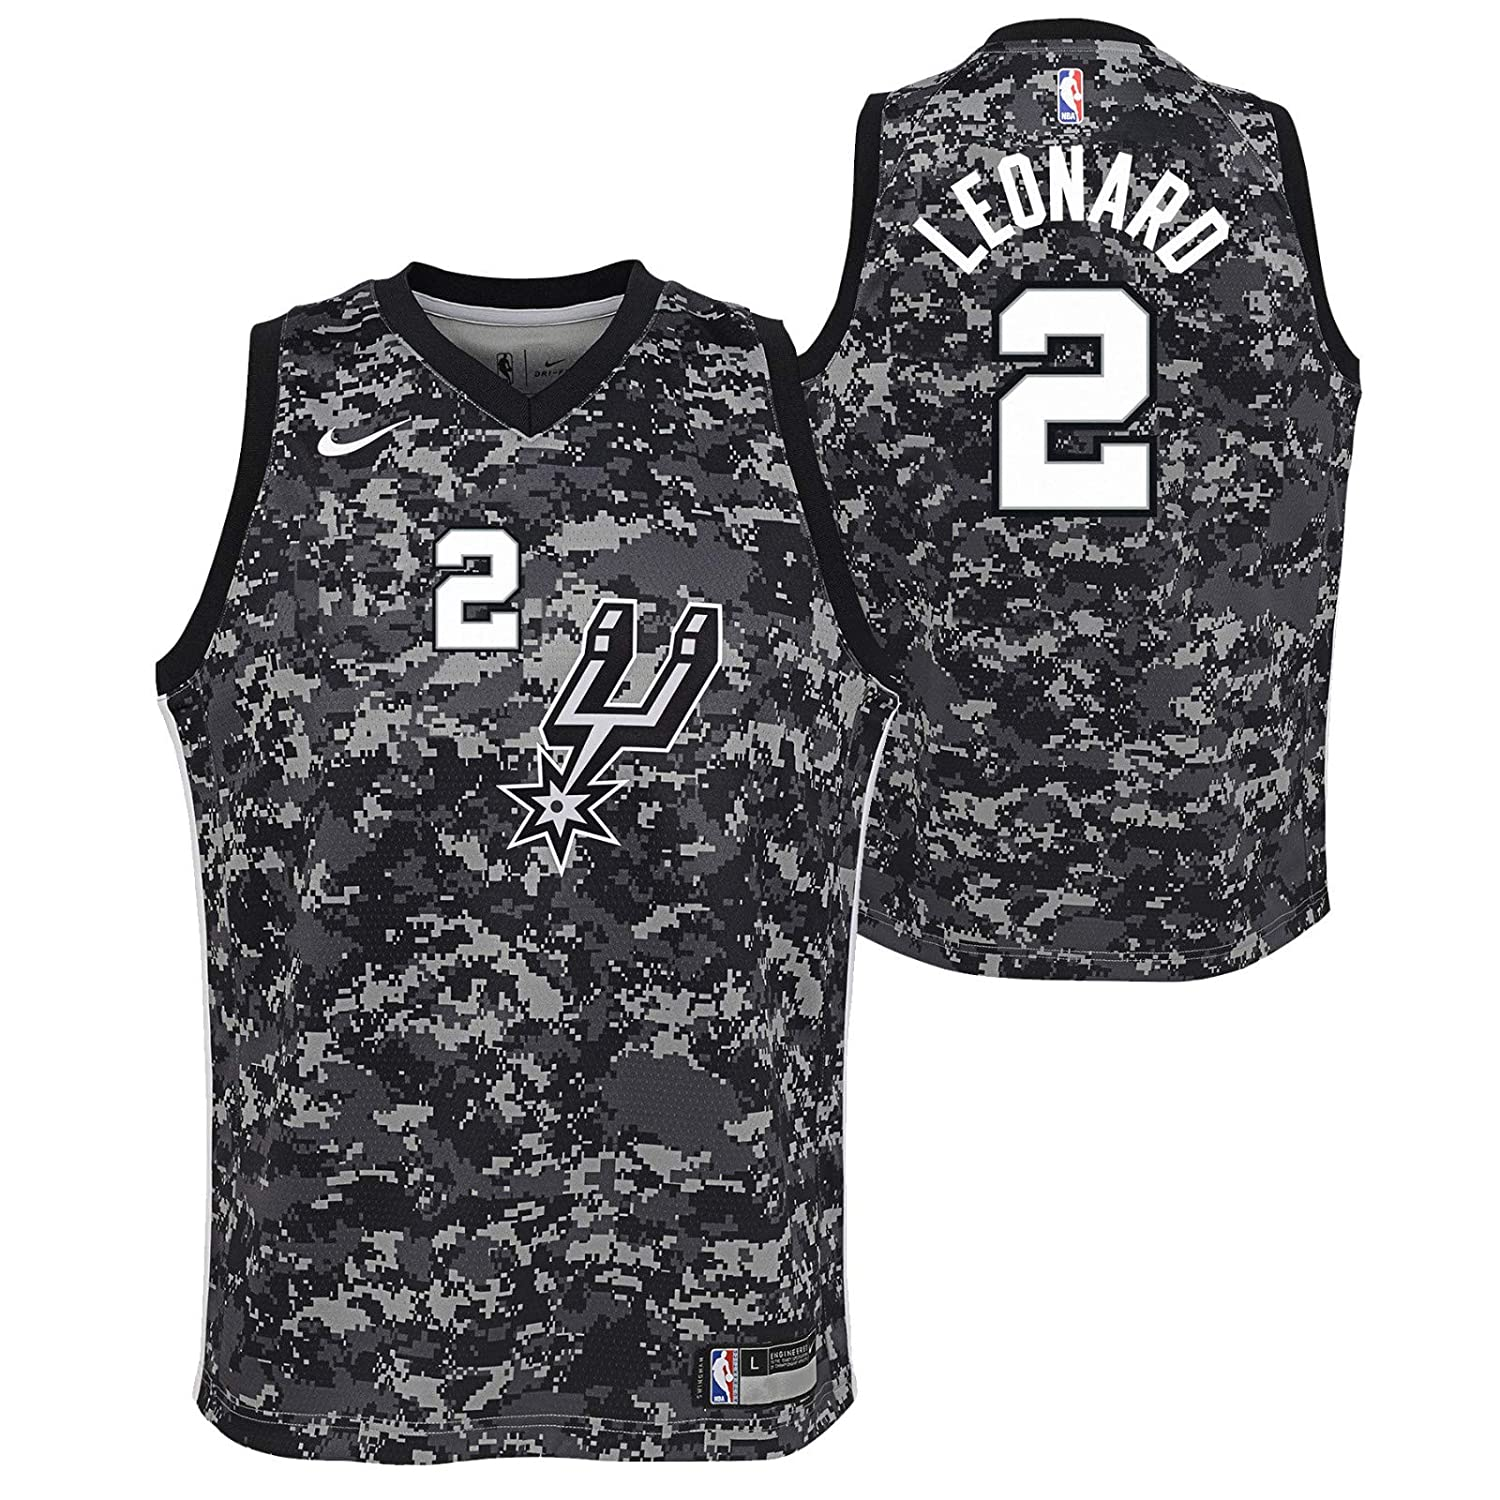 fea19b70ed5 Amazon.com : Outerstuff Kawhi Leonard San Antonio Spurs NBA Nike Youth  Black City Edition Swingman Jersey : Clothing